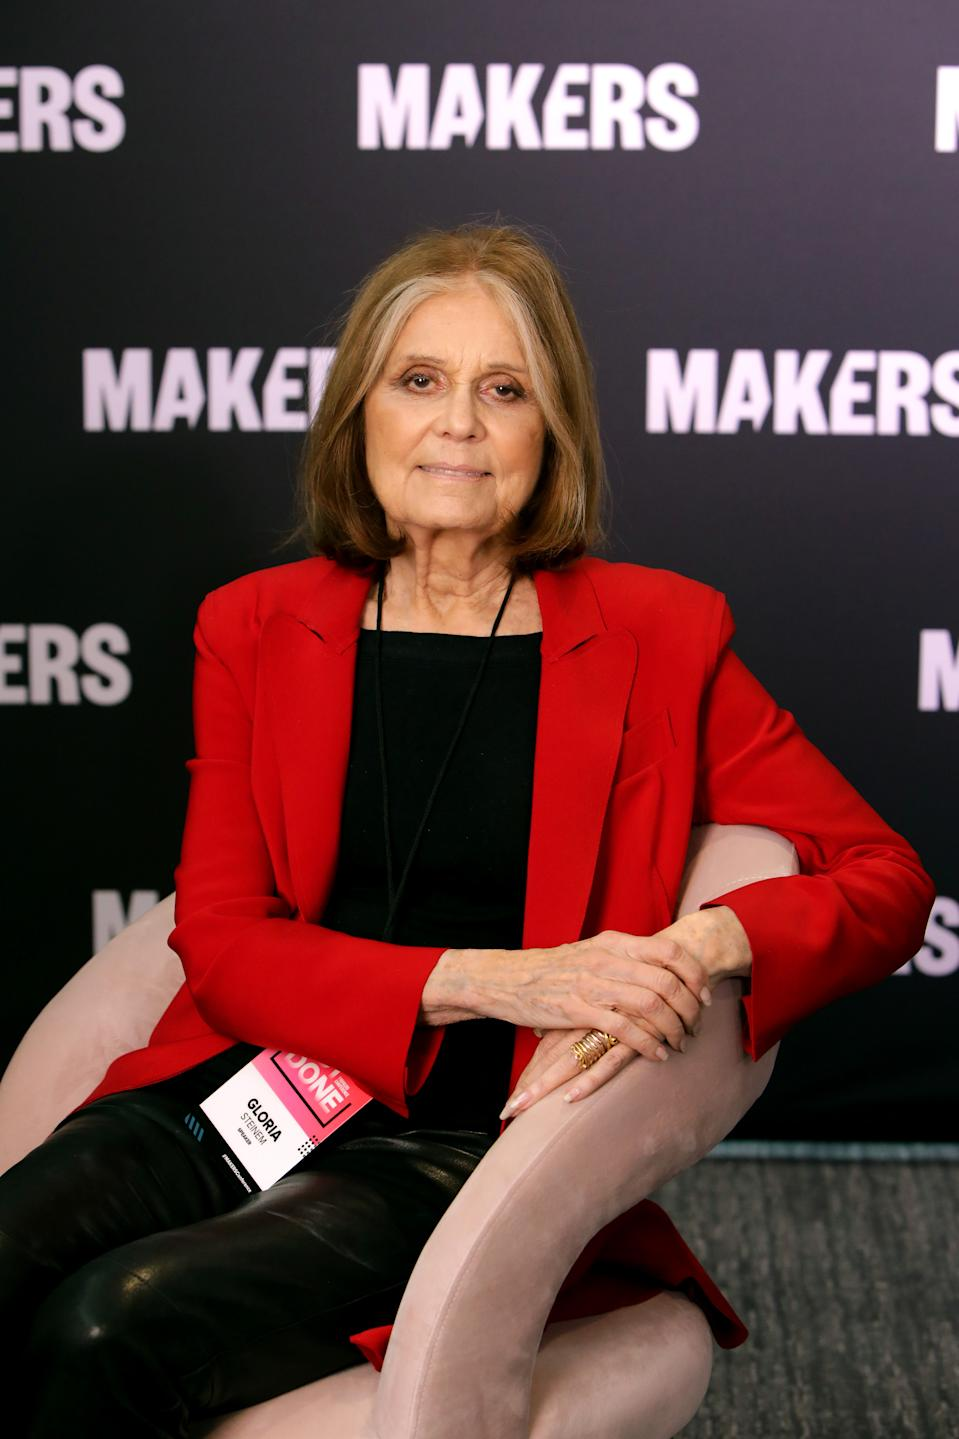 LOS ANGELES, CALIFORNIA - FEBRUARY 11: Gloria Steinem attends The 2020 MAKERS Conference on February 11, 2020 in Los Angeles, California. (Photo by Rachel Murray/Getty Images for MAKERS)